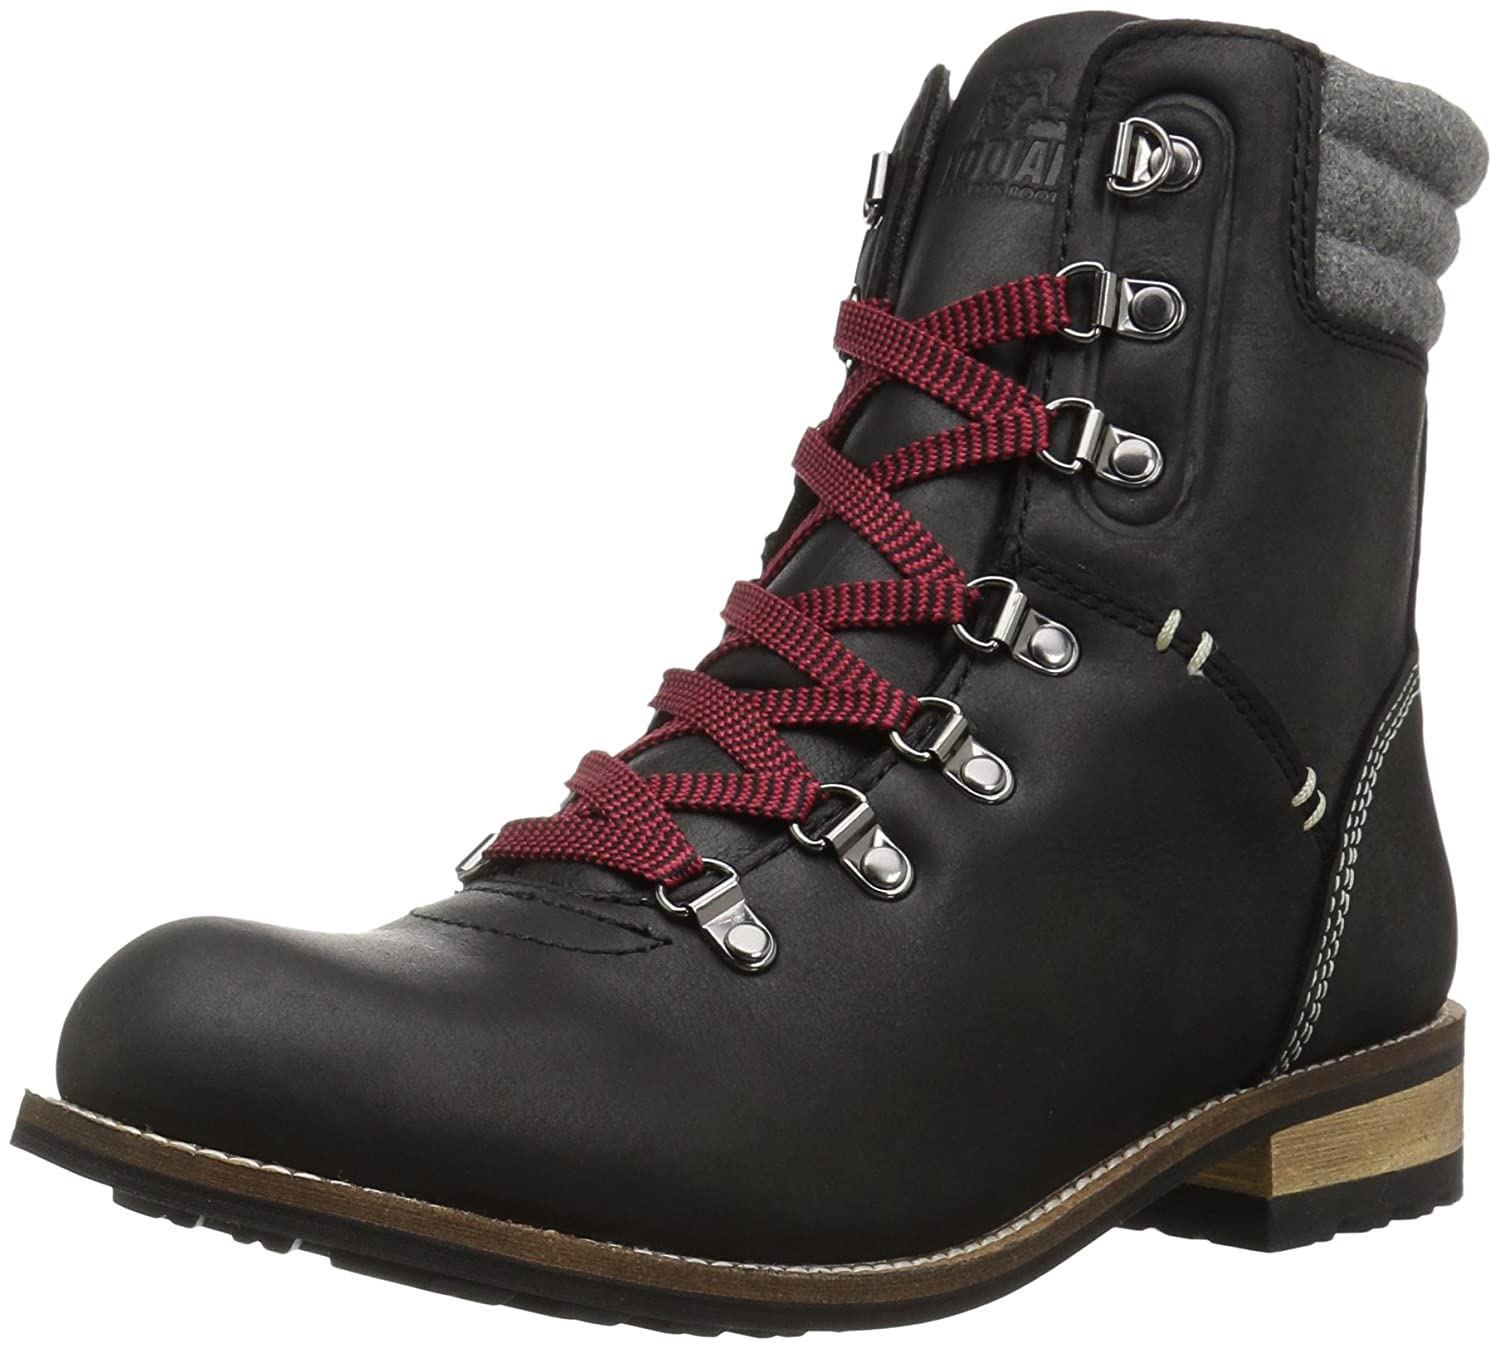 Kodiak Women's Surrey II Hiking Boot B071L17M2B 10 B(M) US|Black